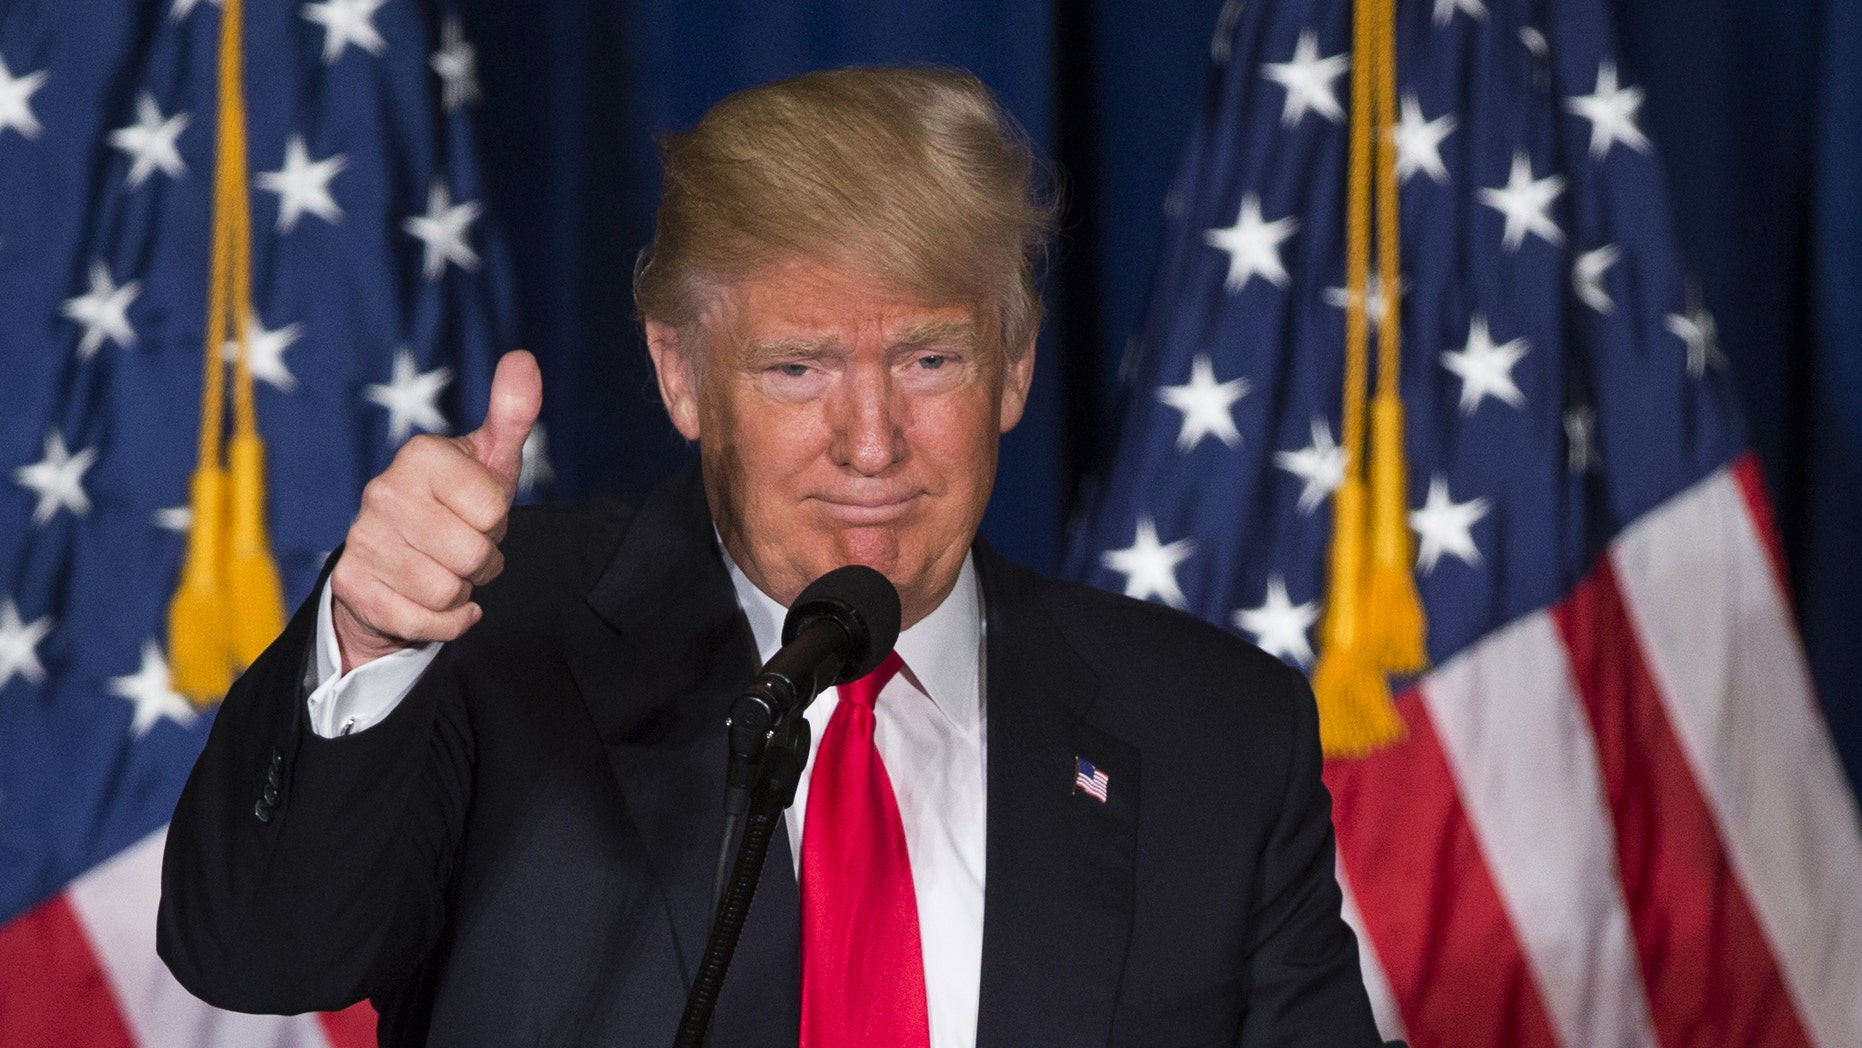 FILE -- April 27, 2016: Republican presidential candidate Donald Trump gives a thumbs up after giving a foreign policy speech at the Mayflower Hotel in Washington. (AP Photo/Evan Vucci)